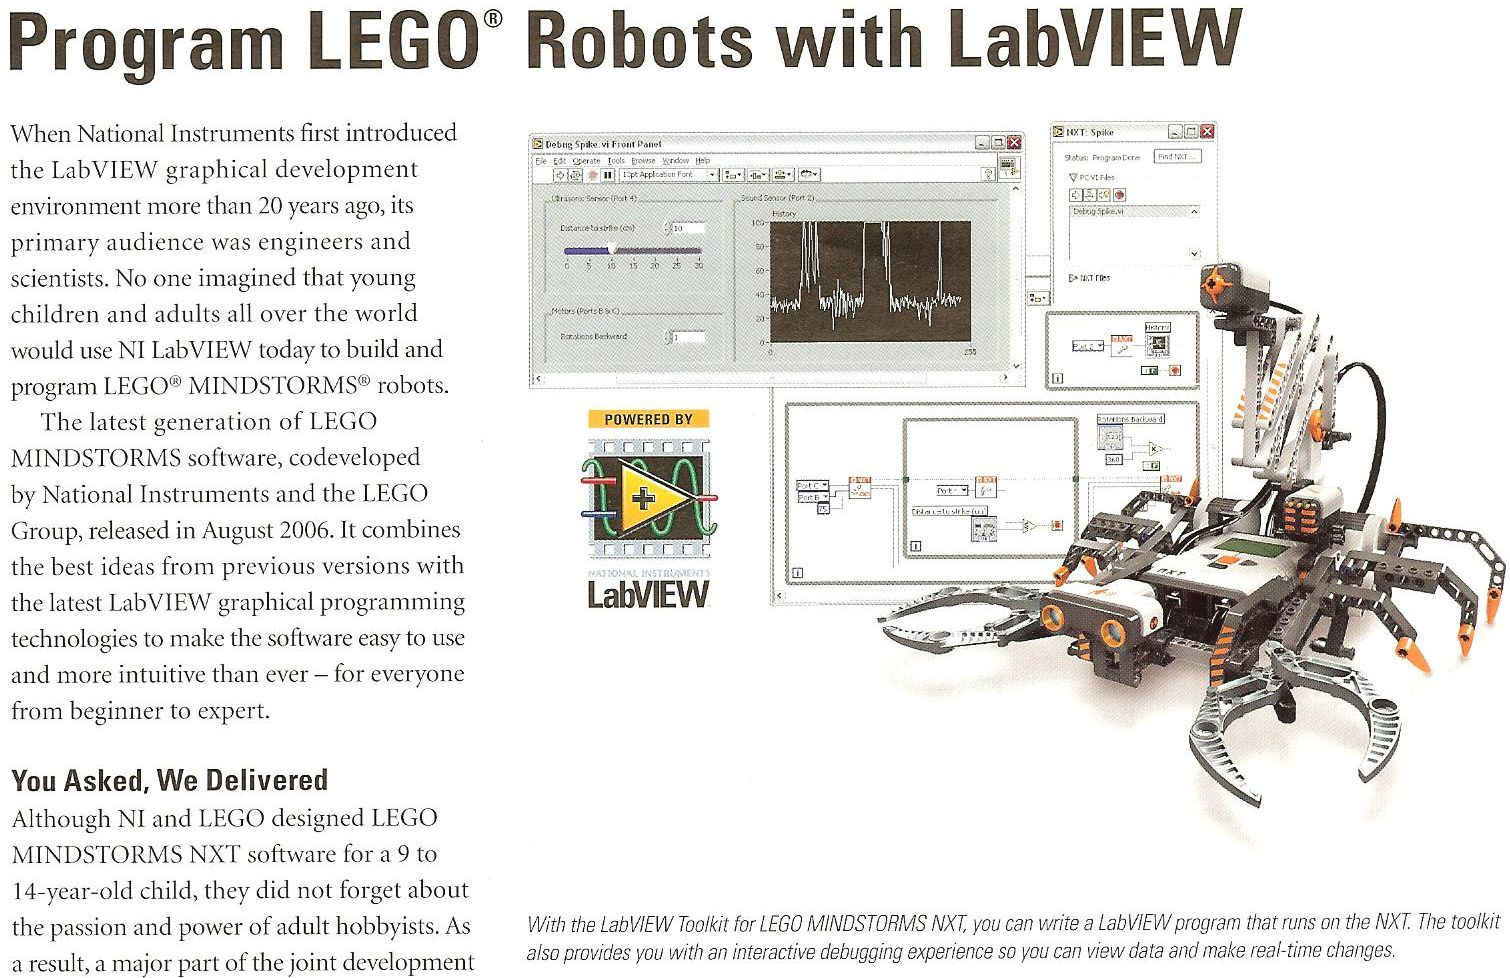 National instruments the moehrings 21506 lego and national instruments has just announced its cooperative development of the mindstorm nxt kit set to release in august 2006 asfbconference2016 Choice Image